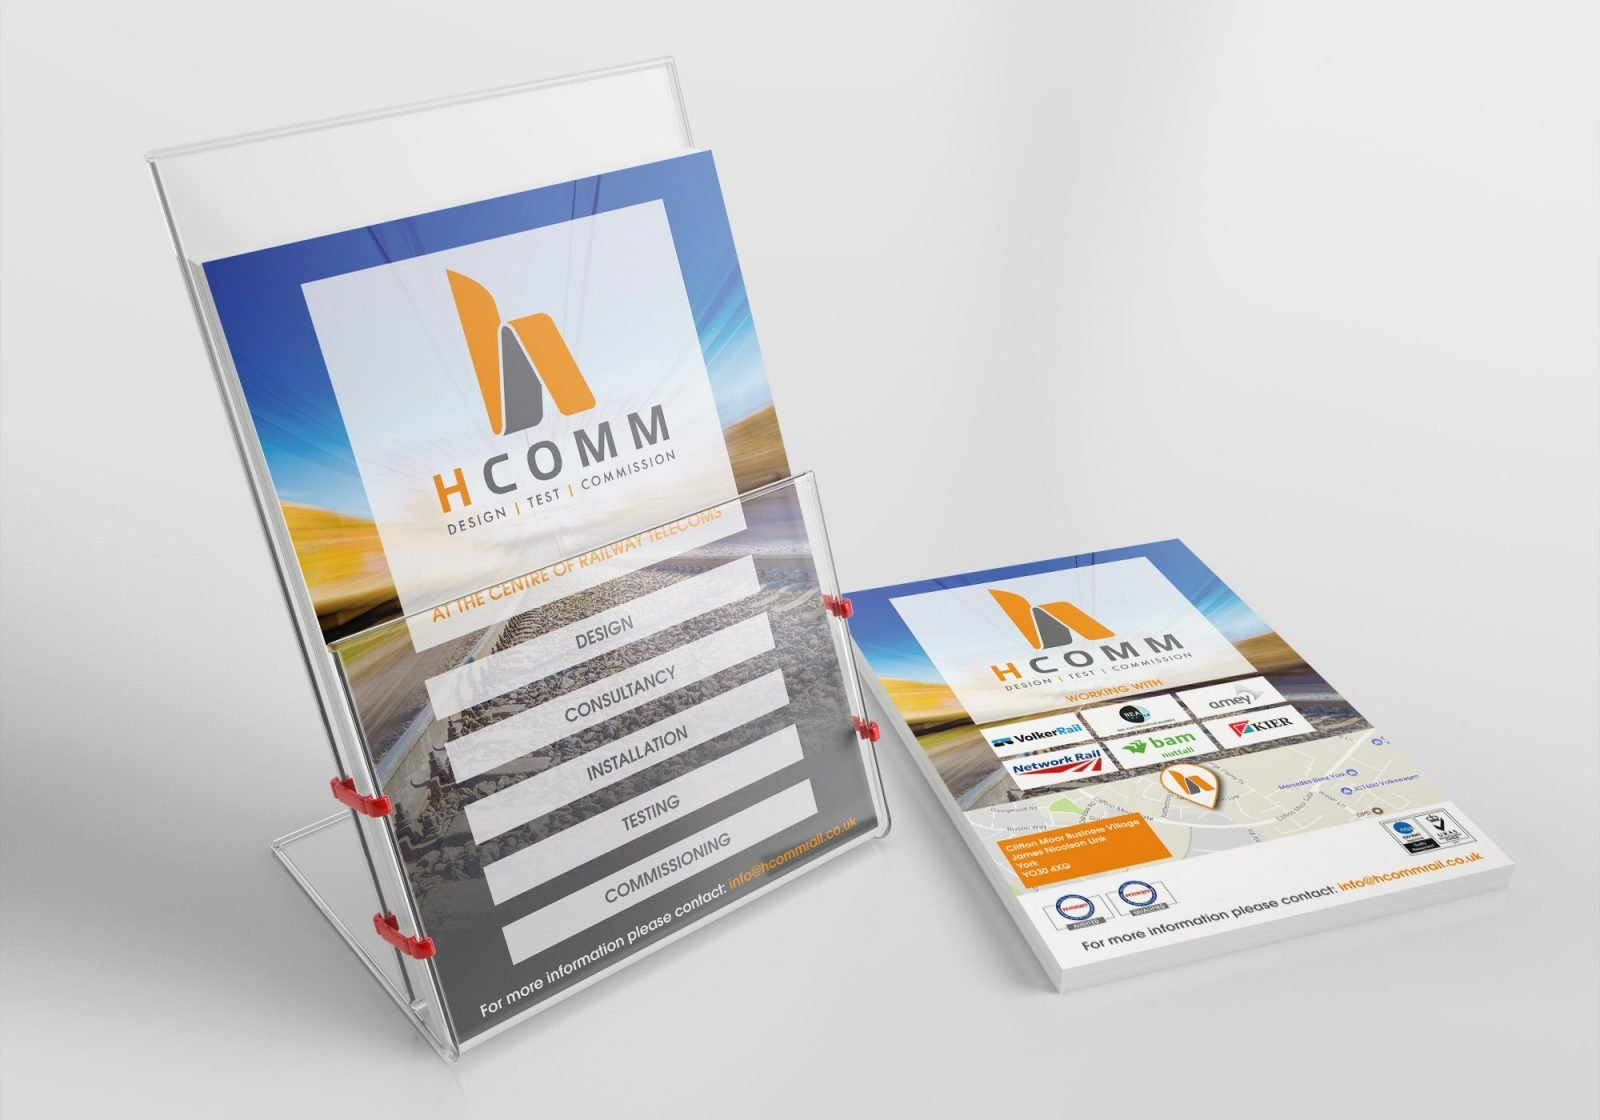 An A5 flyer in a leaflet stand for Hcomm Rail